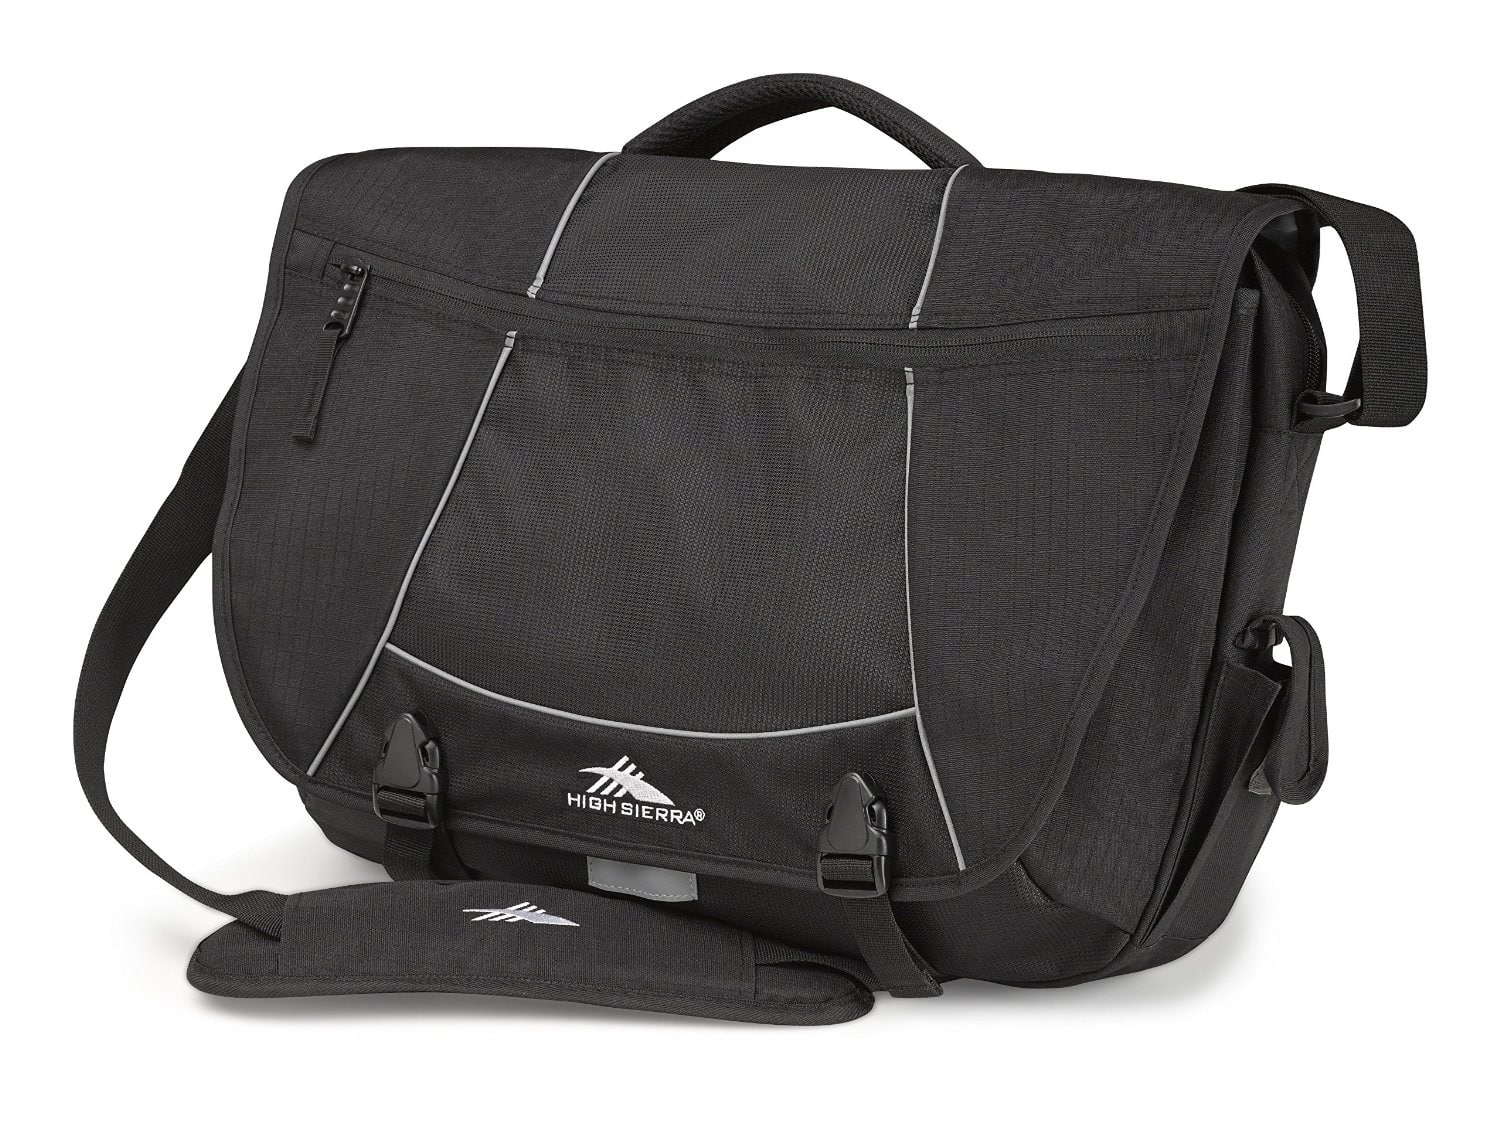 High Sierra Tank Messenger Bag -Black Amazon.com 9.28 +FSSS Prime